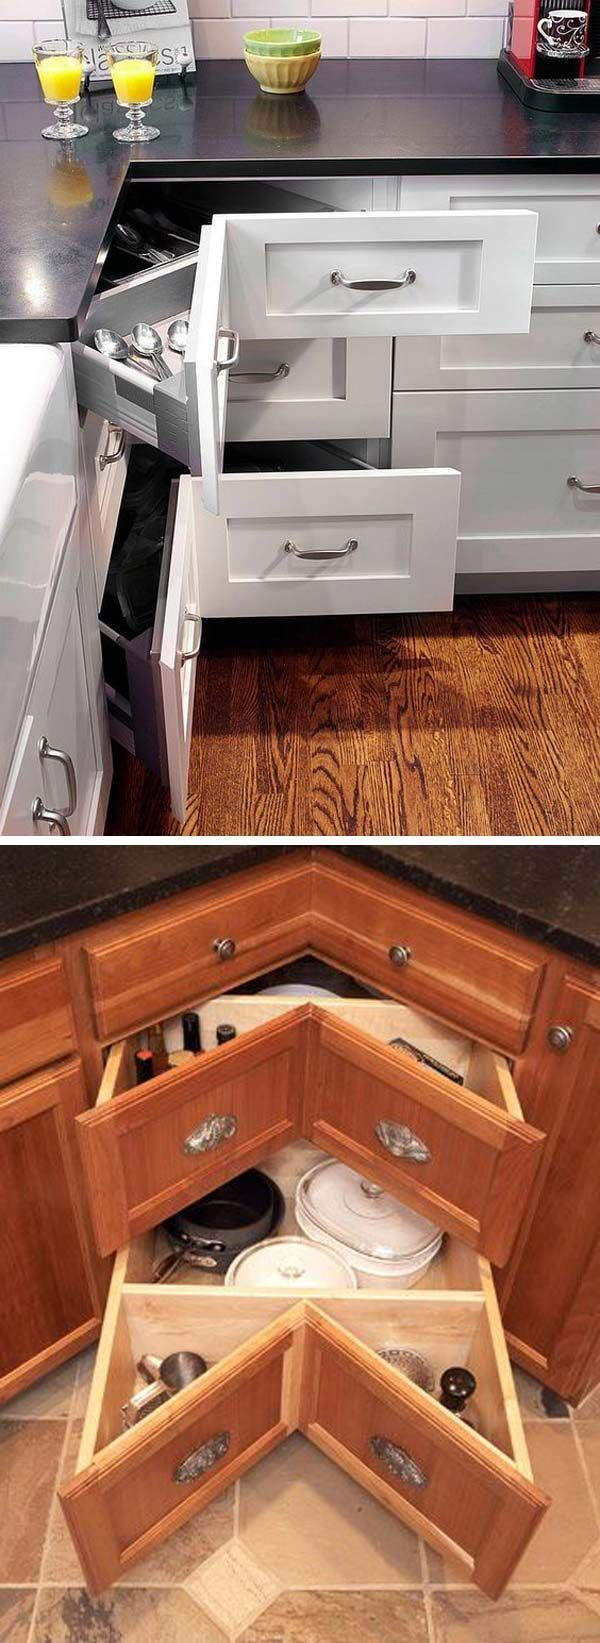 Superb A 45 Degree Angled Stack Of Drawers Work Well In Awkward Kitchen Spaces  Like Corner Cabinets: | Kitchen Ideas | Pinterest | Degree Angle, Drawers  And Corner